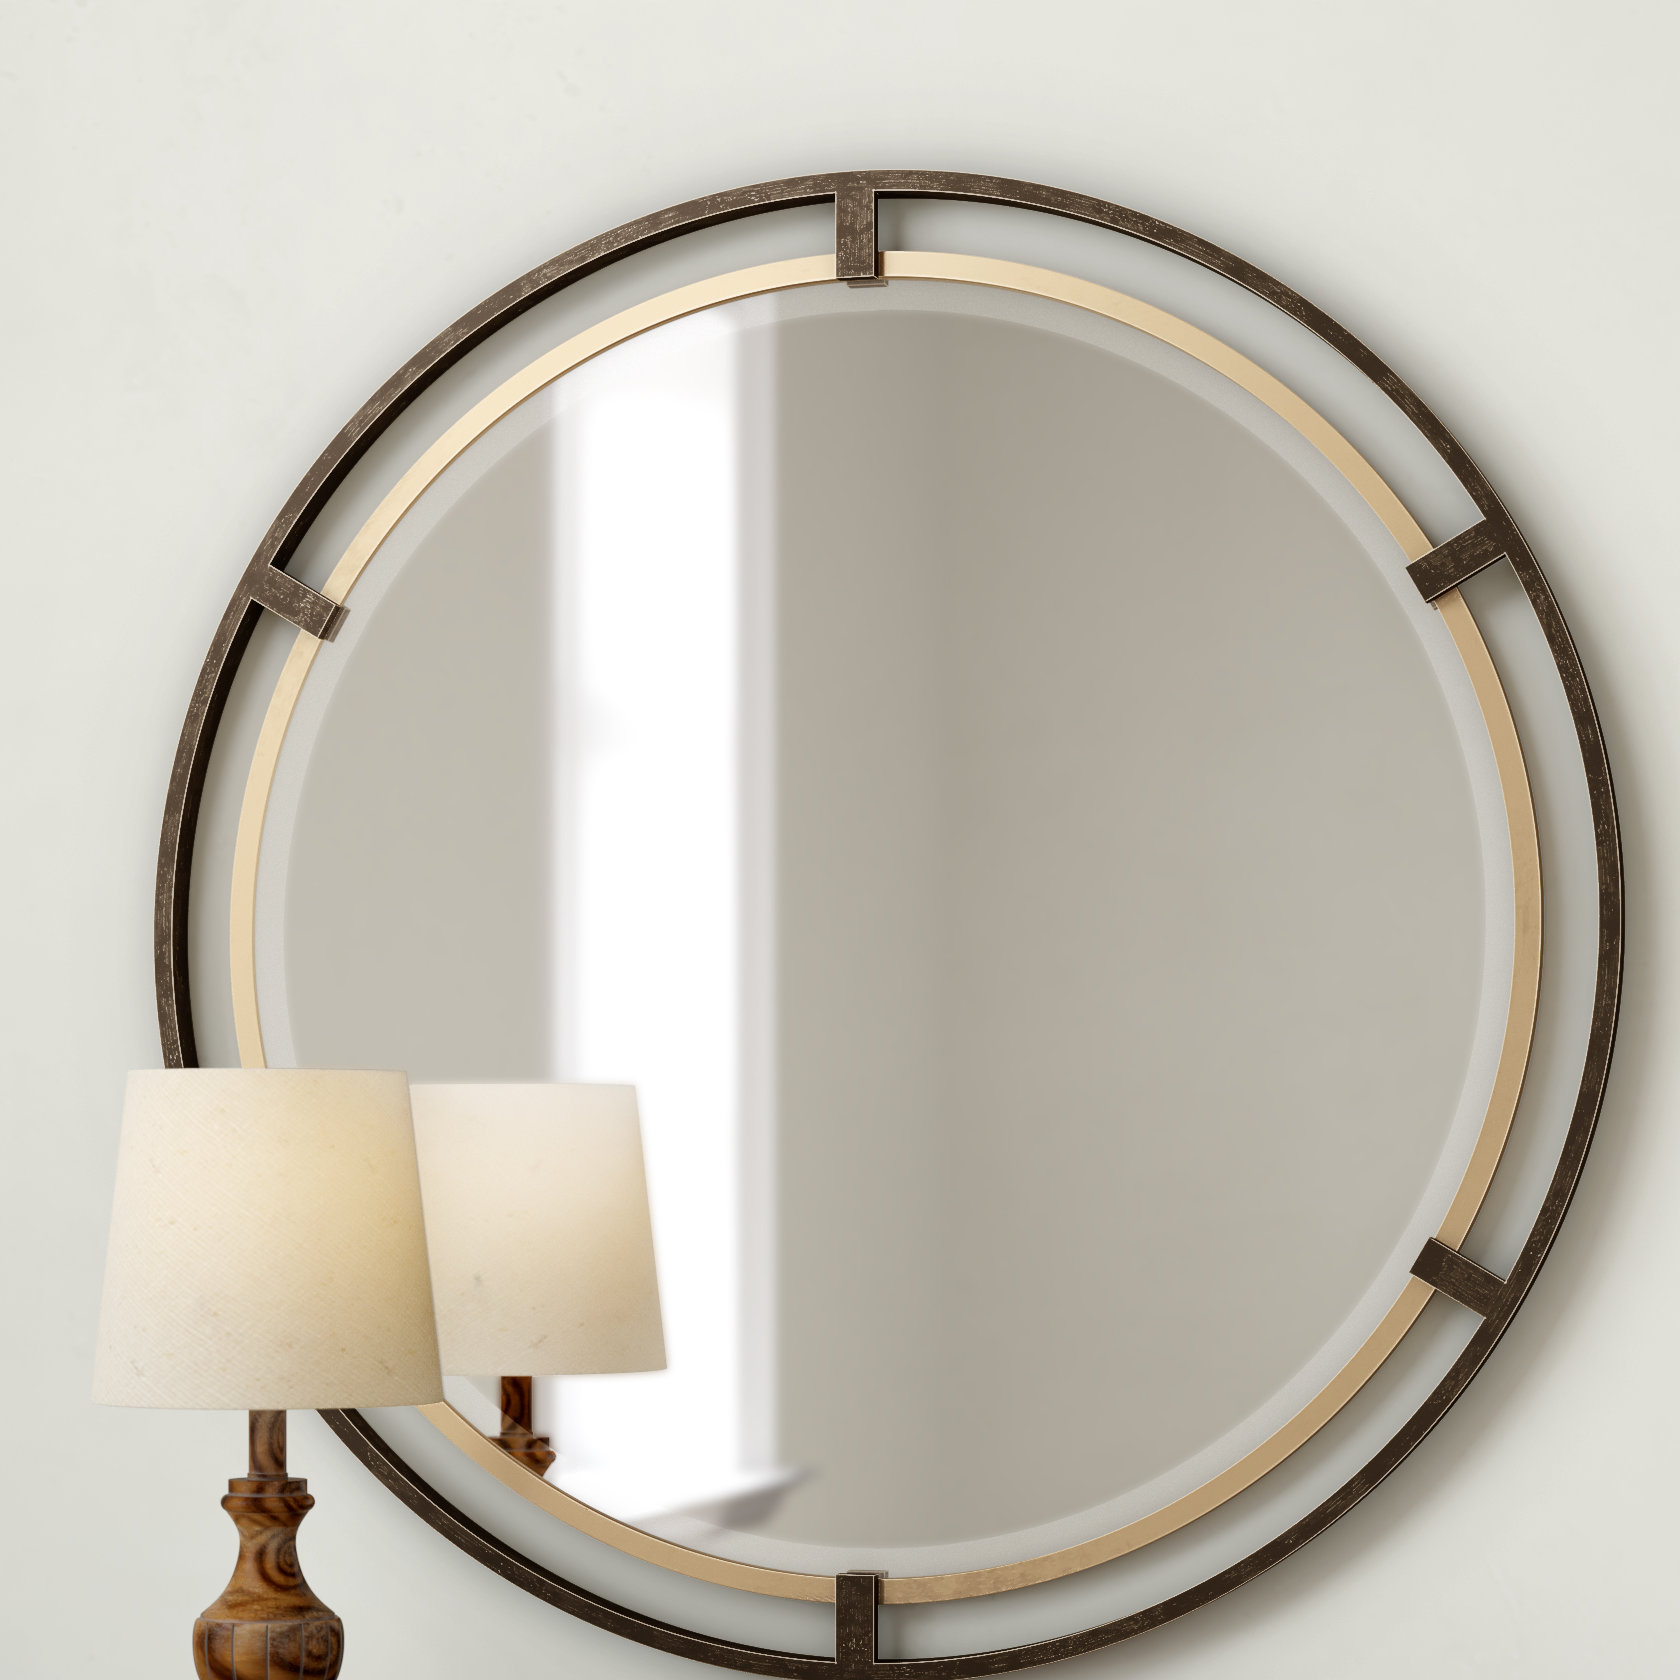 Pia Carrizo Modern & Contemporary Accent Mirror Throughout Charters Towers Accent Mirrors (View 13 of 20)